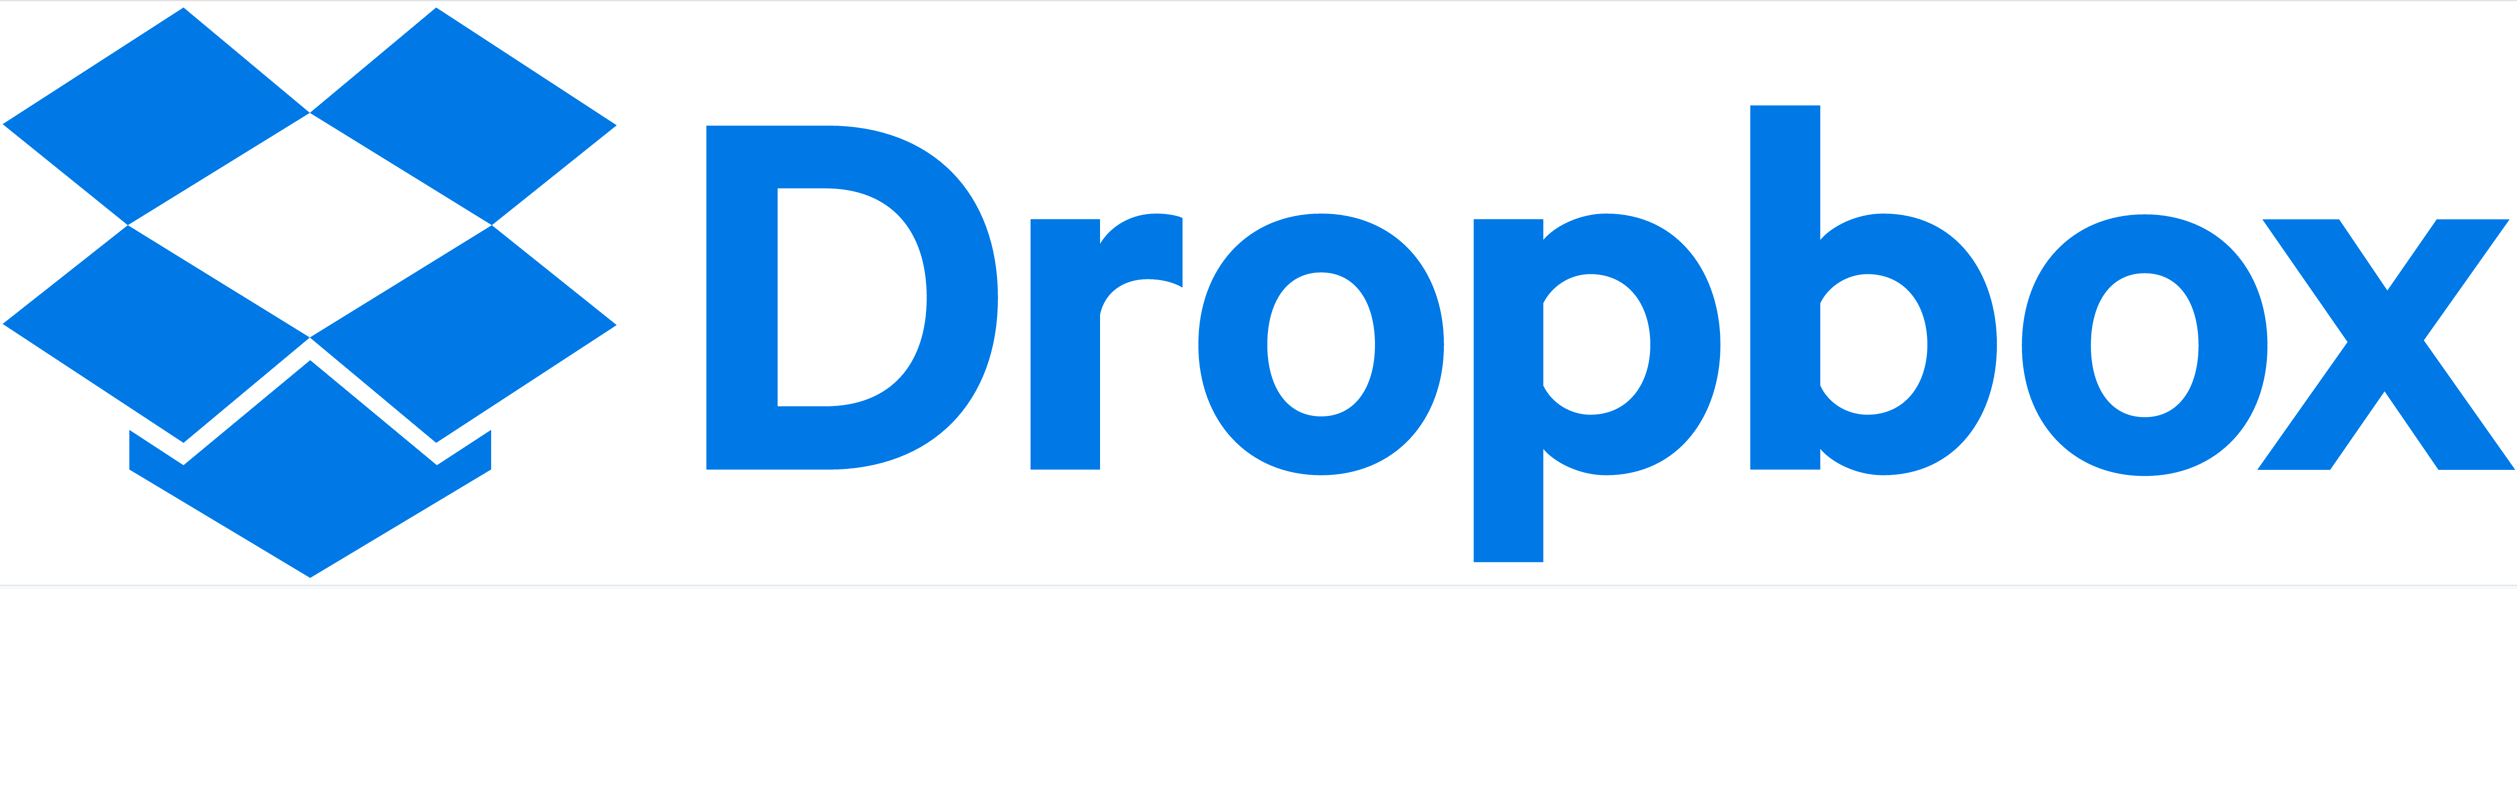 the ultimate dropbox tips and tricks guide cloudhq blog